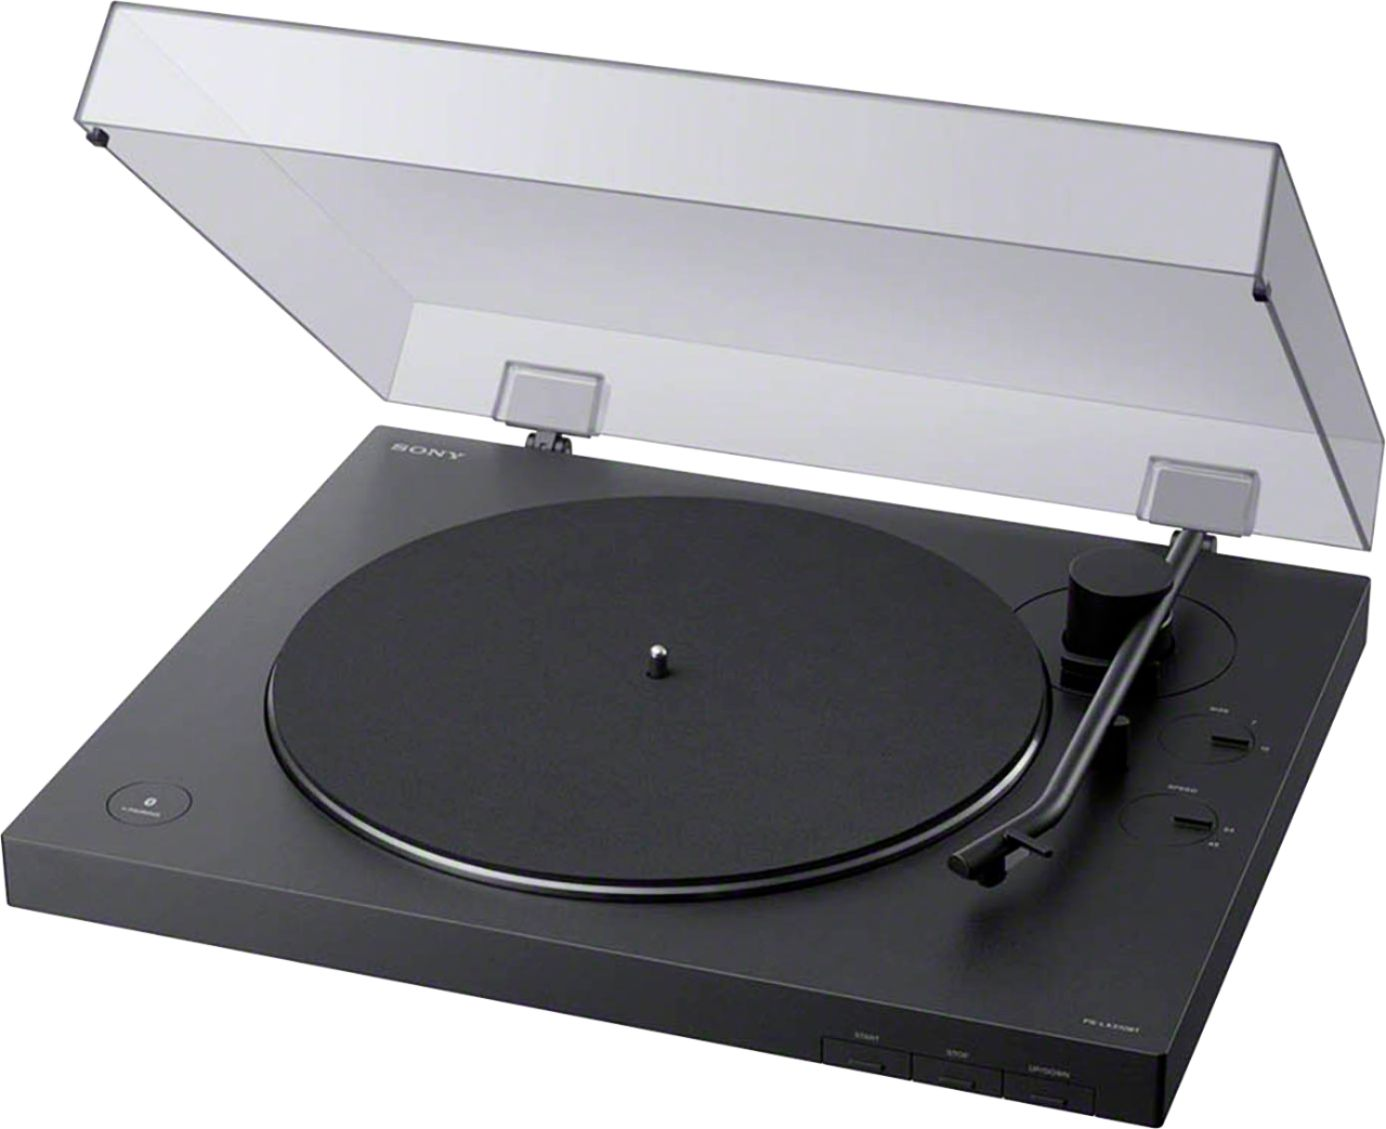 Sony bluetooth stereo turntable, best Christmas gifts